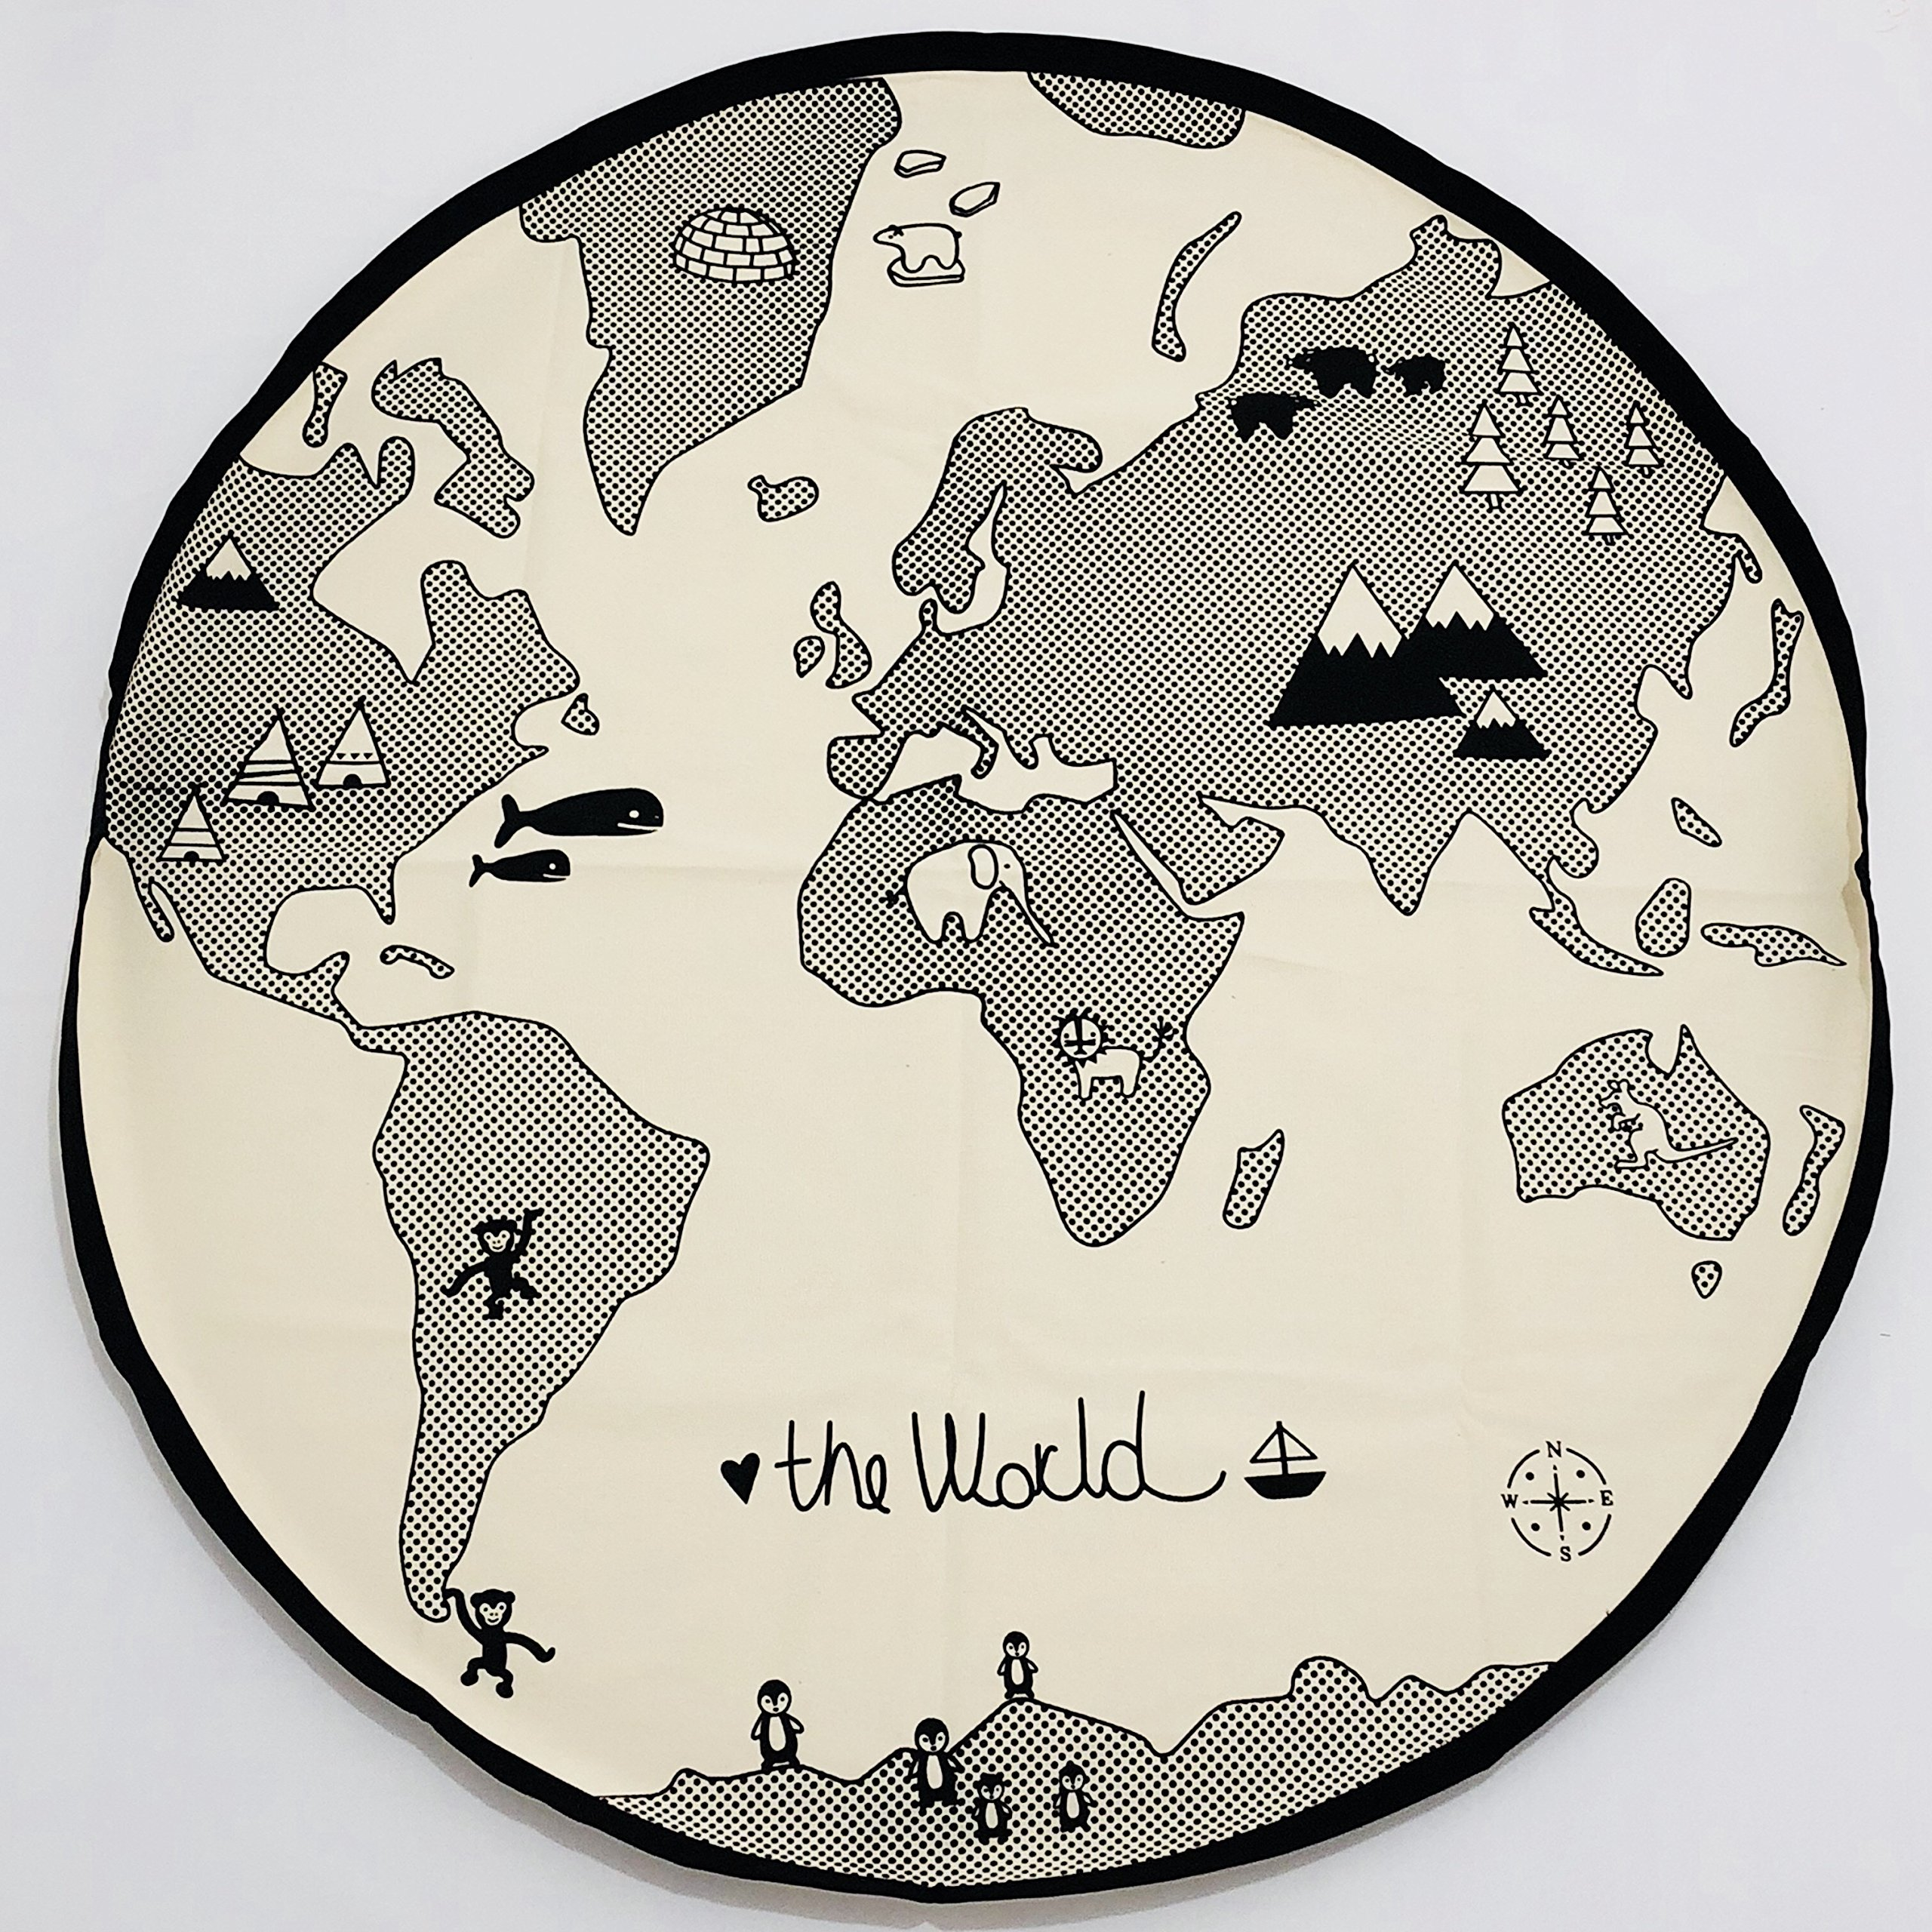 SEALOVESFLOWER Circle Creamy-White Adventure World Map Baby Earth Game Blanket Crawling Pad Children Room Decorations